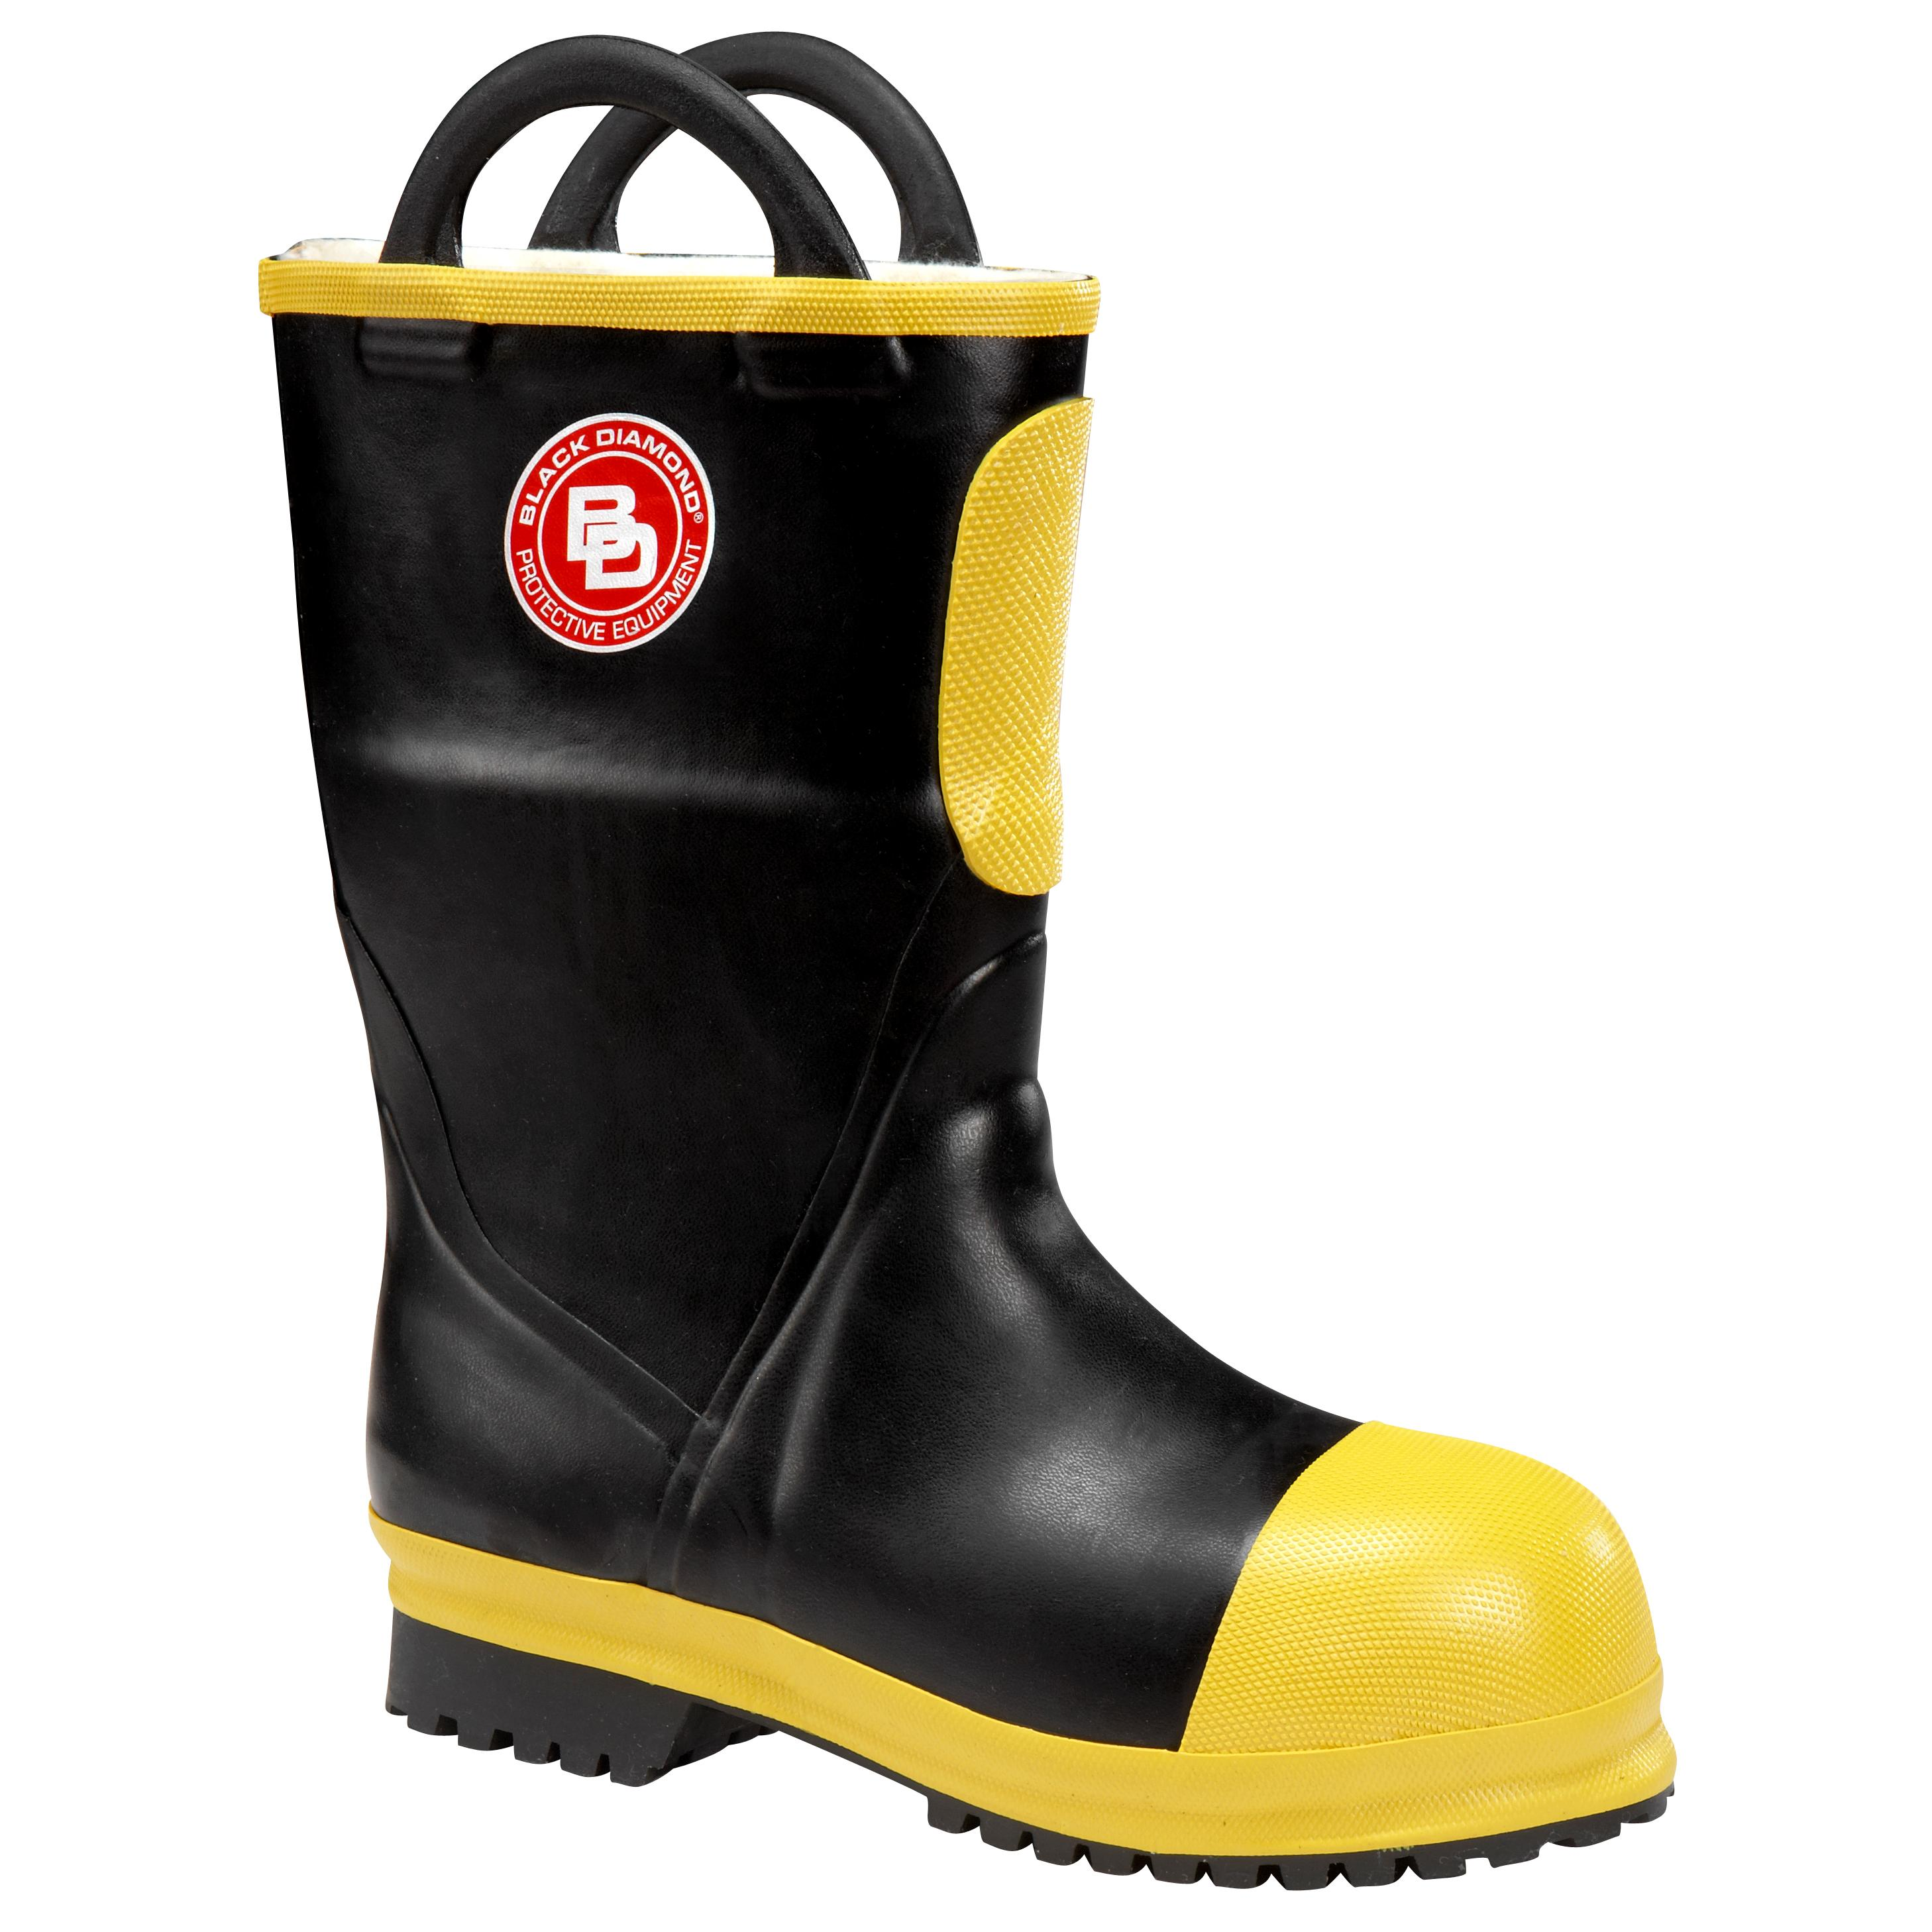 Rubber Insulated Firefighter Boots 11 Inch Nfpa By Black